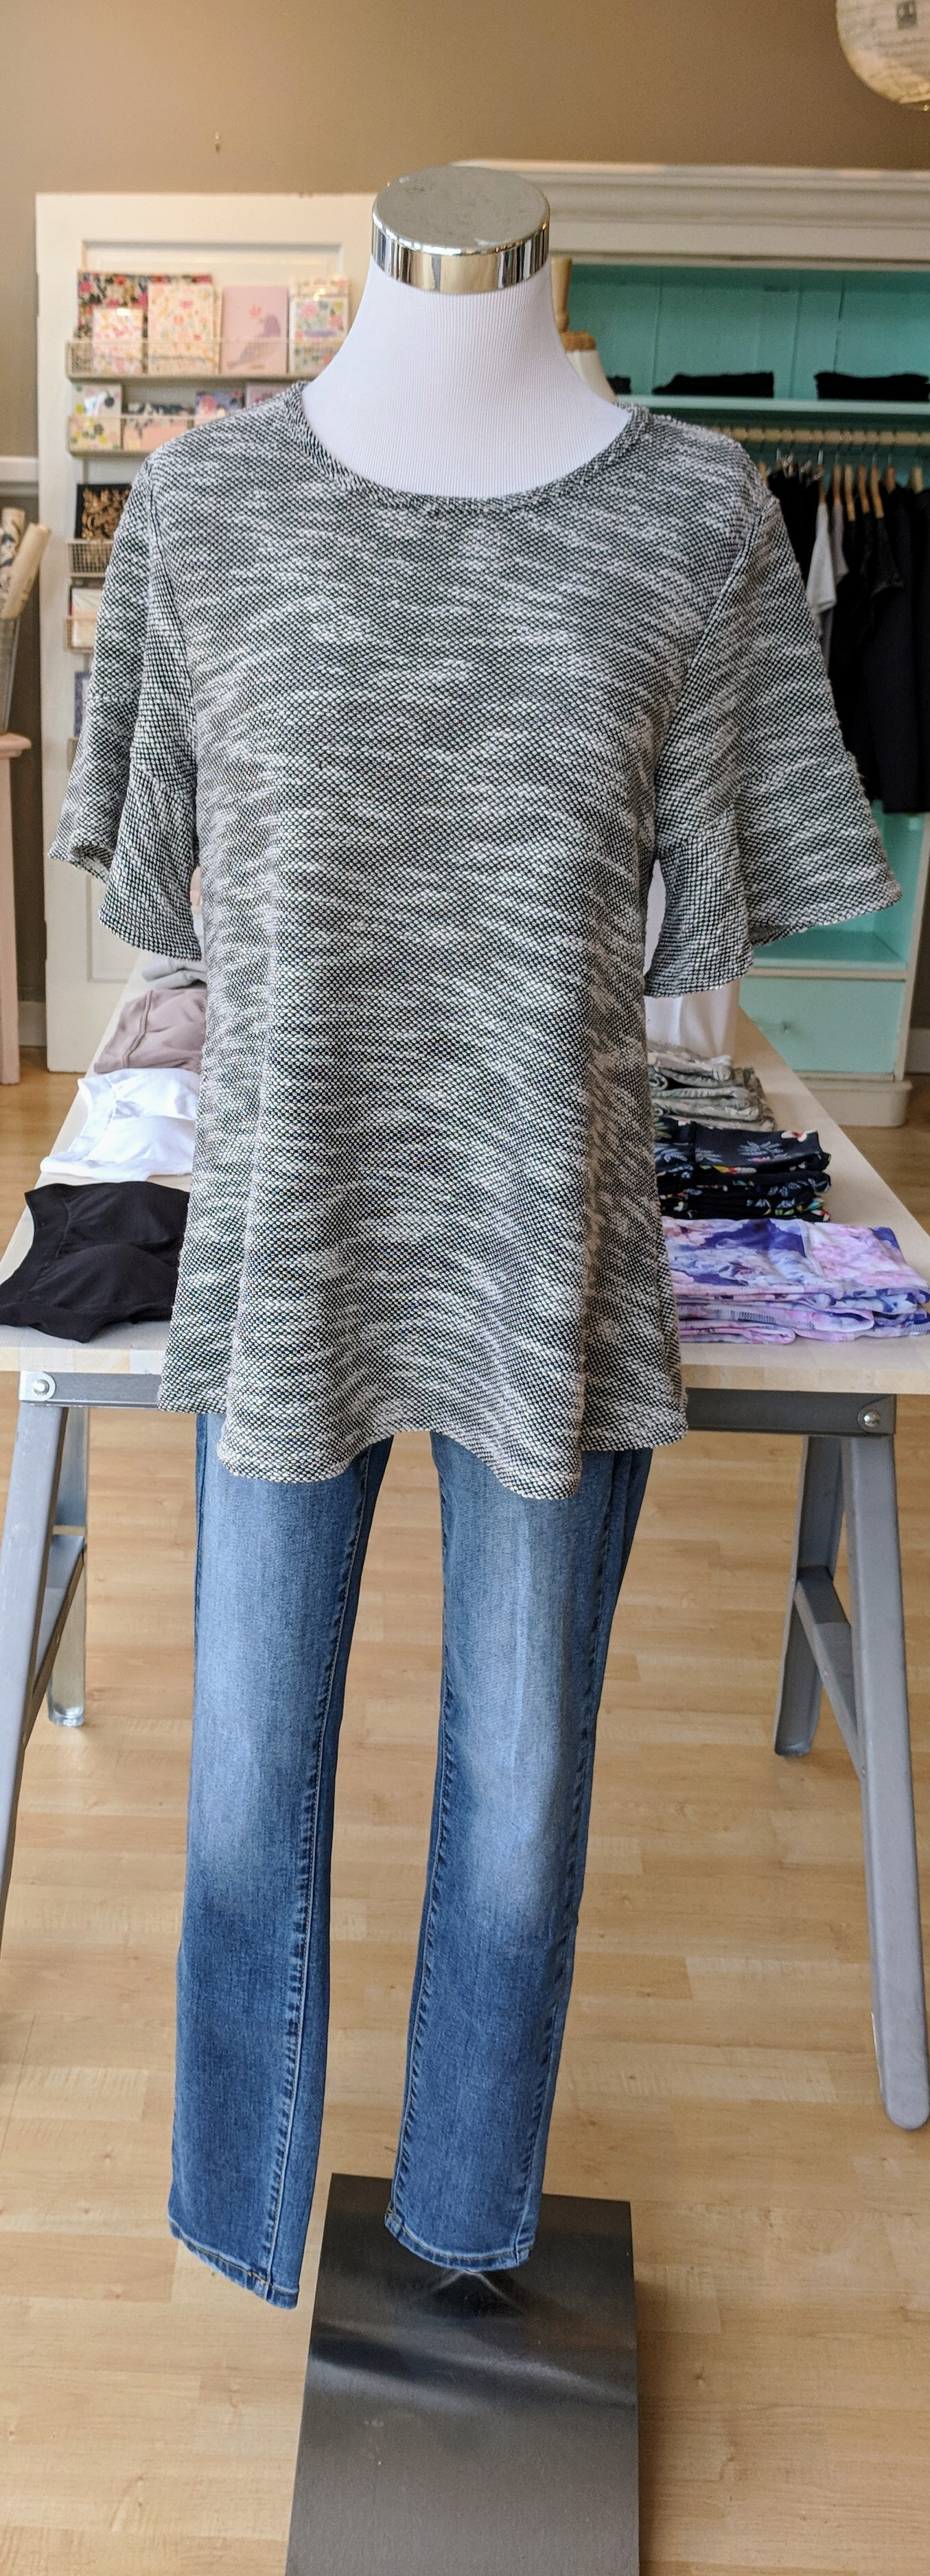 Charcoal and white bell sleeve top $32